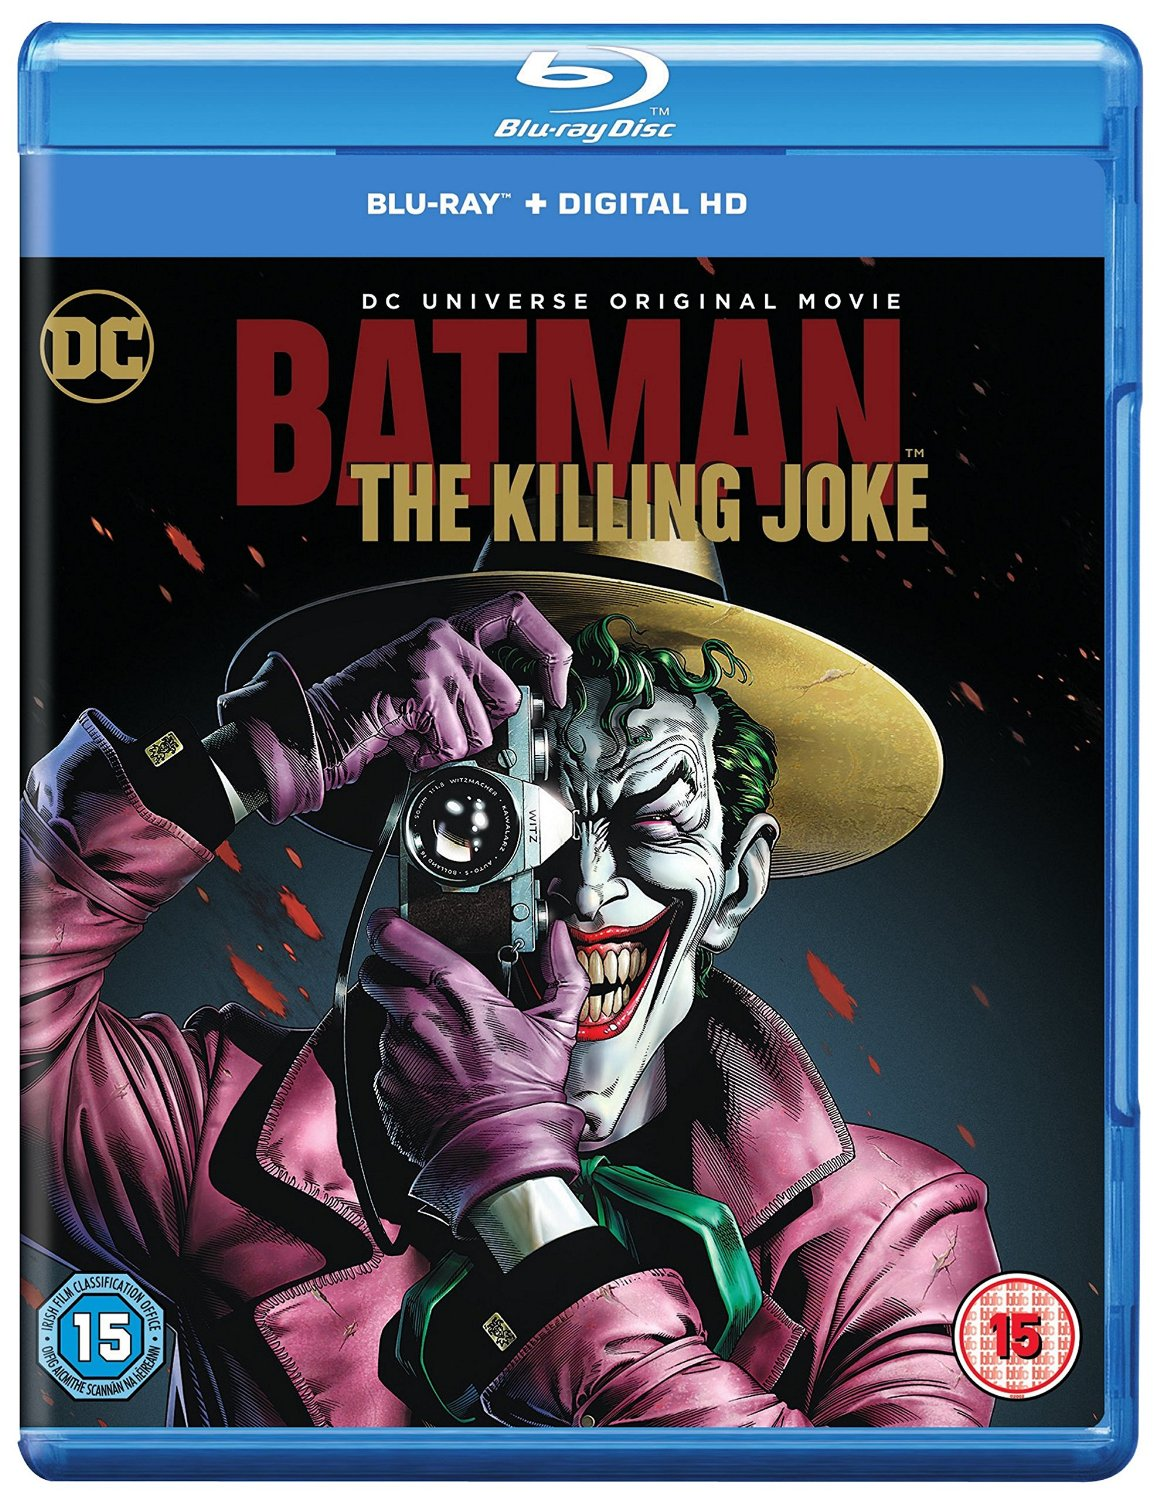 Batman The Killing Joke Blu-ray review